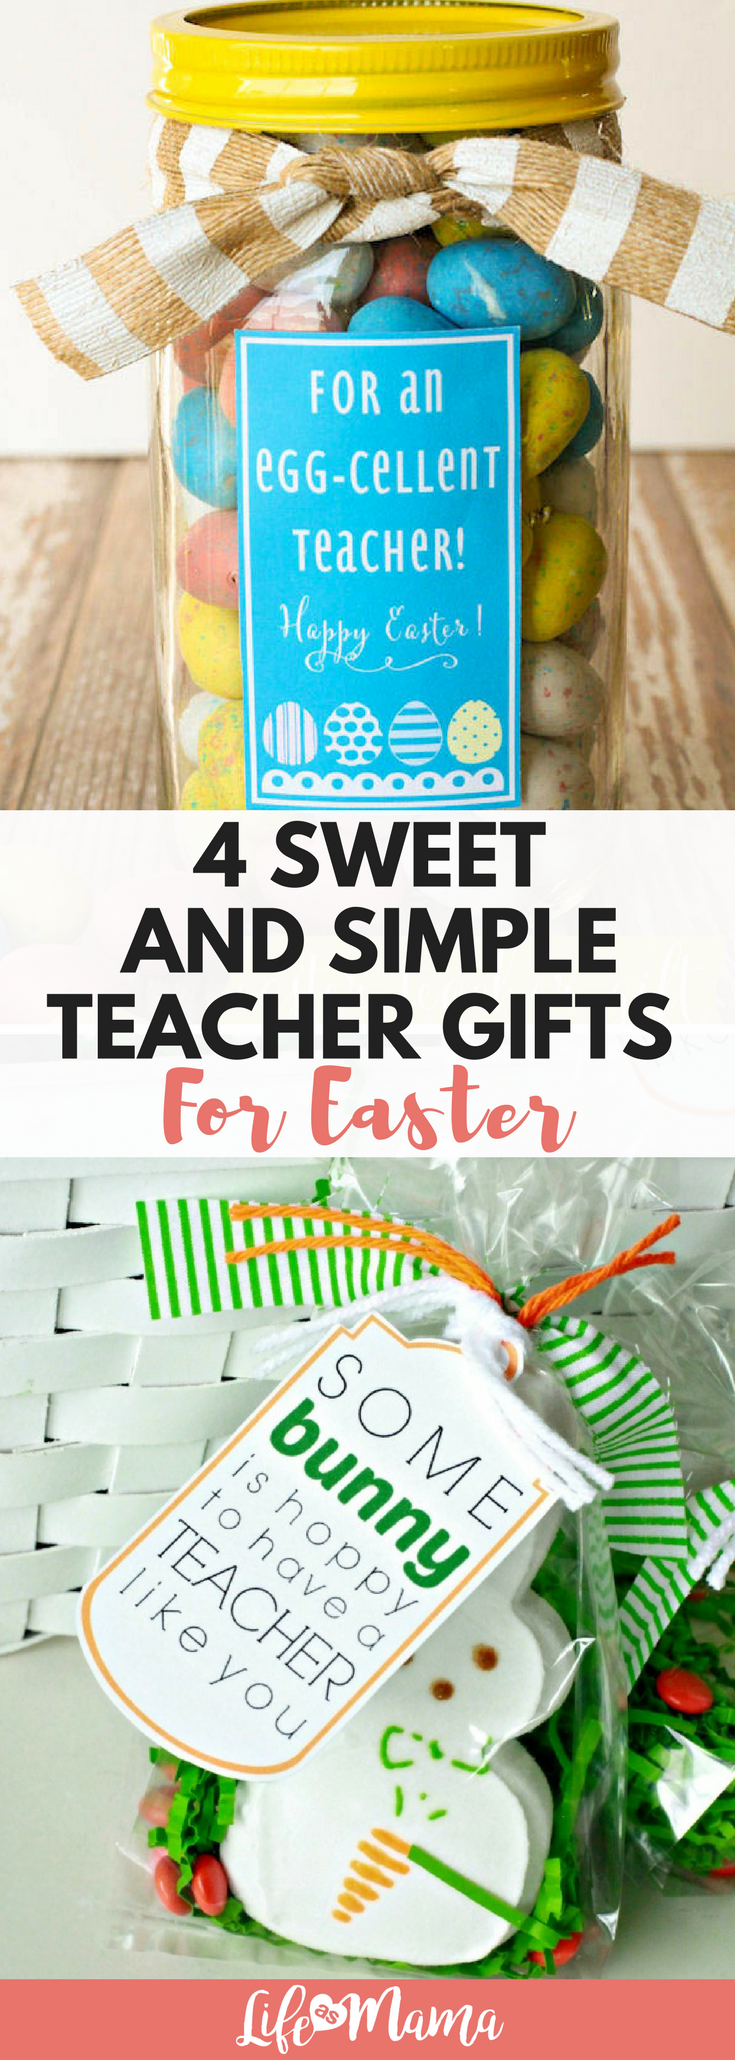 4 sweet and simple teacher gifts for easter negle Images